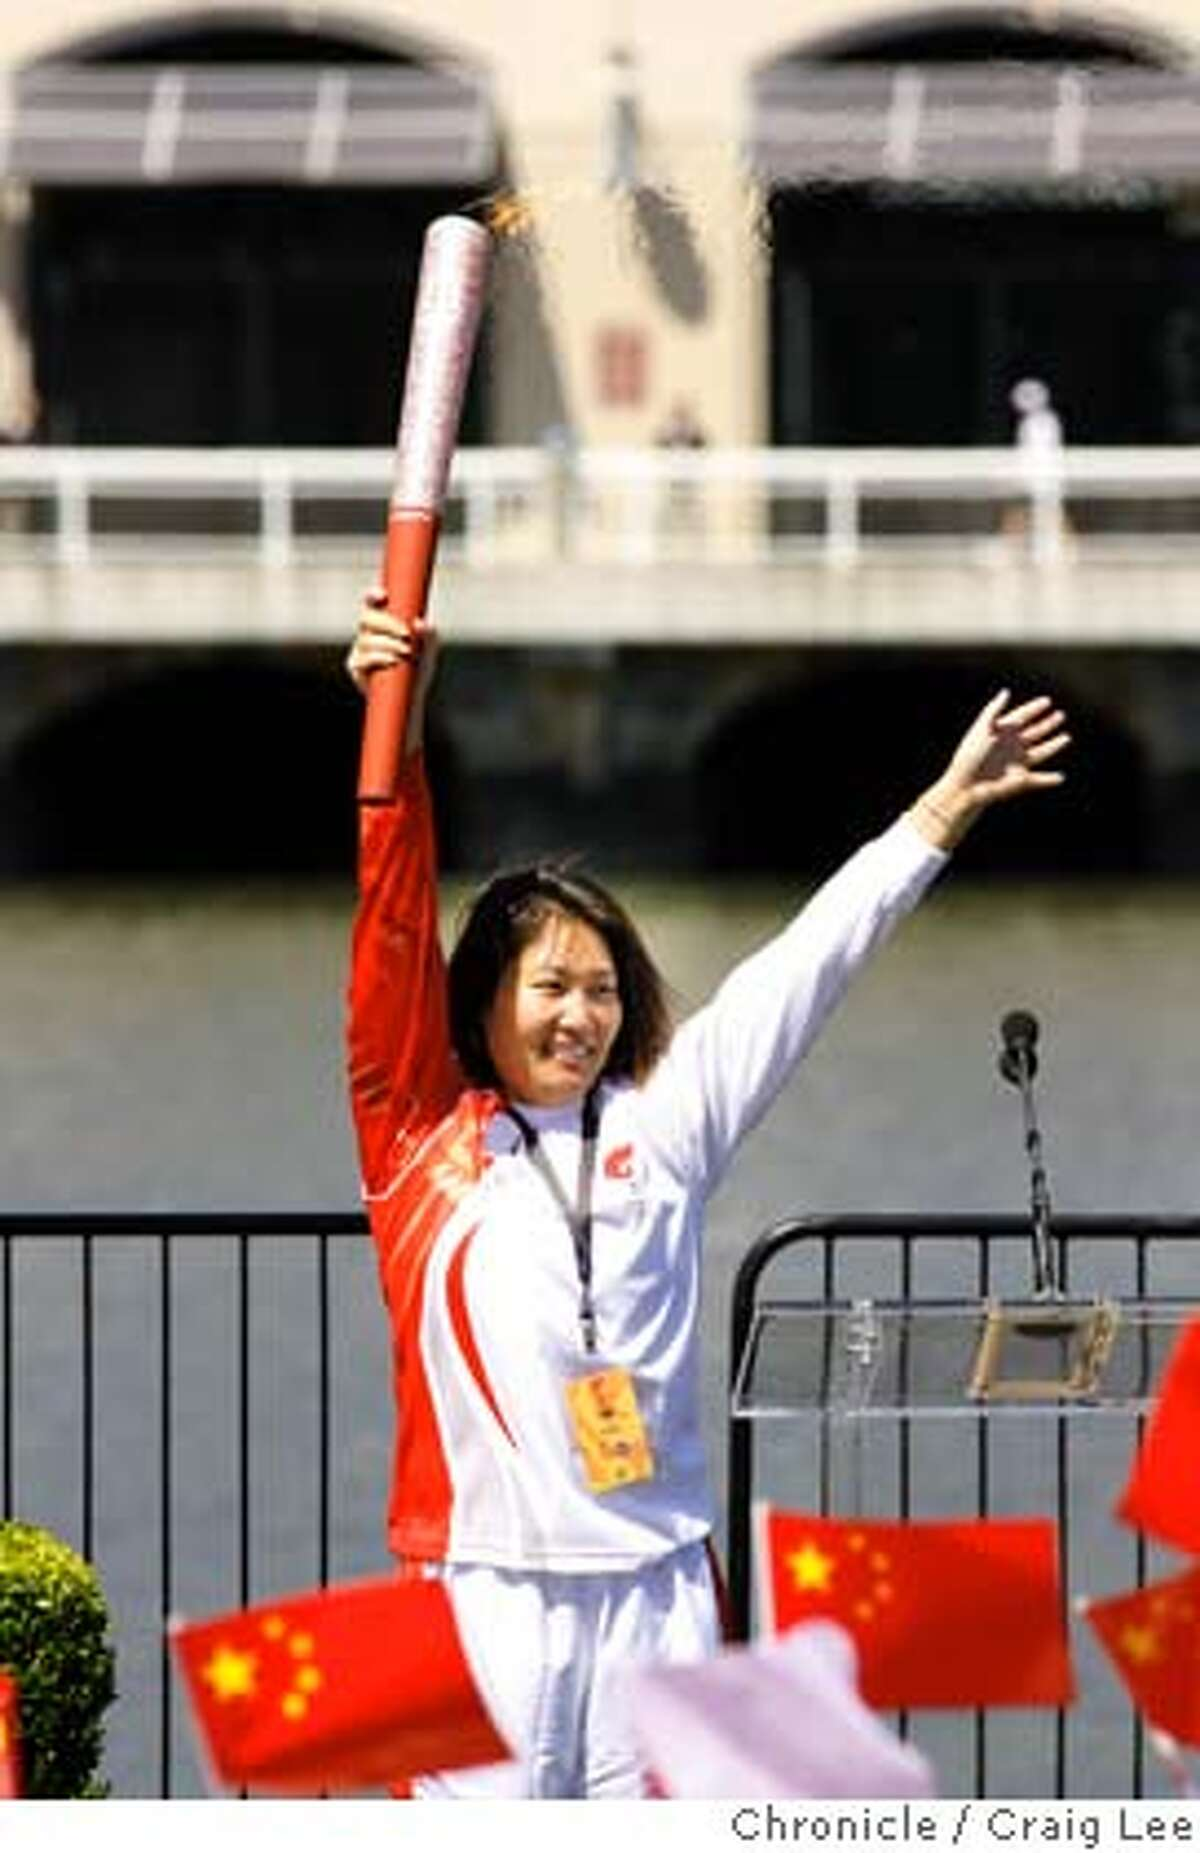 The start of the Olympic Torch Relay at McCovey Cove in San Francisco, Calif., on April 9, 2008. Photo by Craig Lee / The